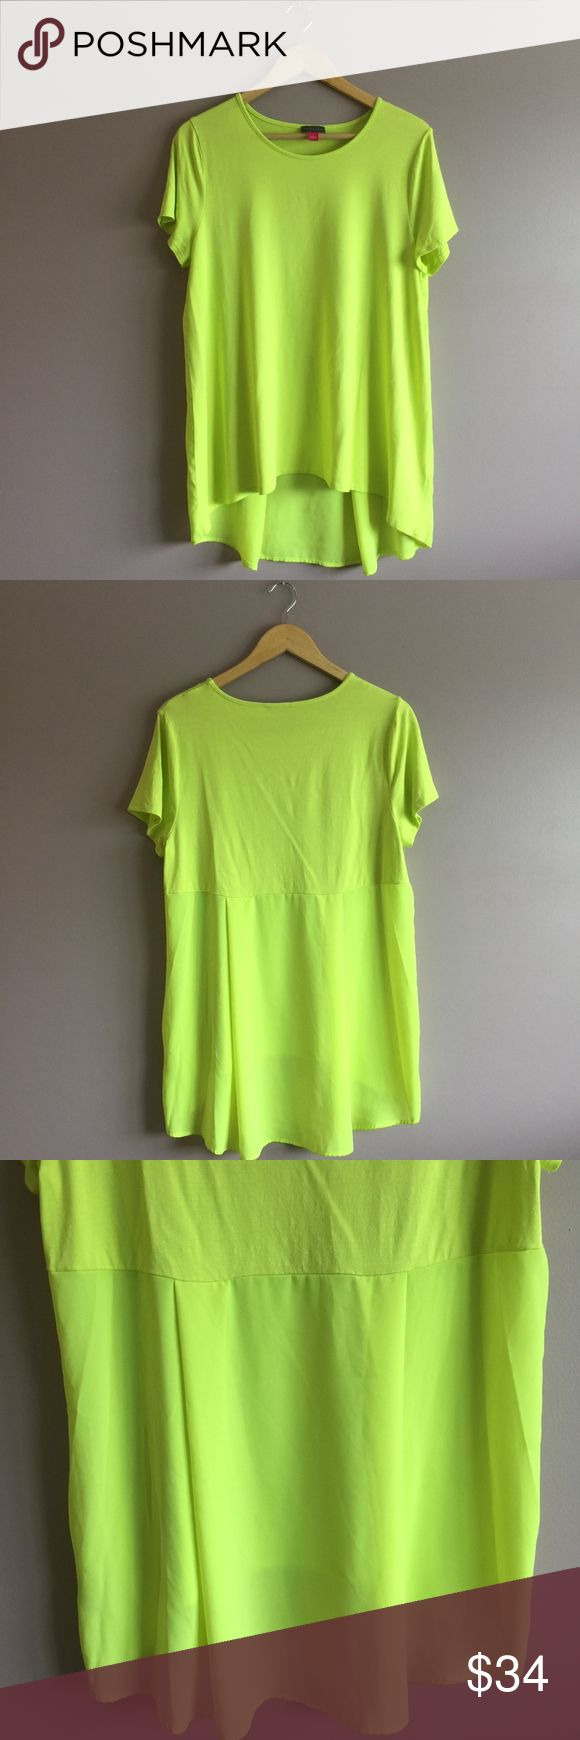 """Women's Vince Camuto Neon Green Short Sleeve Top Women's Vince Camuto Neon Green Short Sleeve Top  •Size: Large •Armpit to armpit: 19"""" •Shoulder to shoulder: 16"""" •Length: 25.6"""" •Features a sheer lower back •From a smoke-free and pet-free home •In very good condition  Fast shipping (same day) during business days if ordered before 4PM Eastern Time  No trades  Bundle & save!! (5% off 3 or more items) or add to a bundle & I will make you an offer Vince Camuto Tops Blouses"""